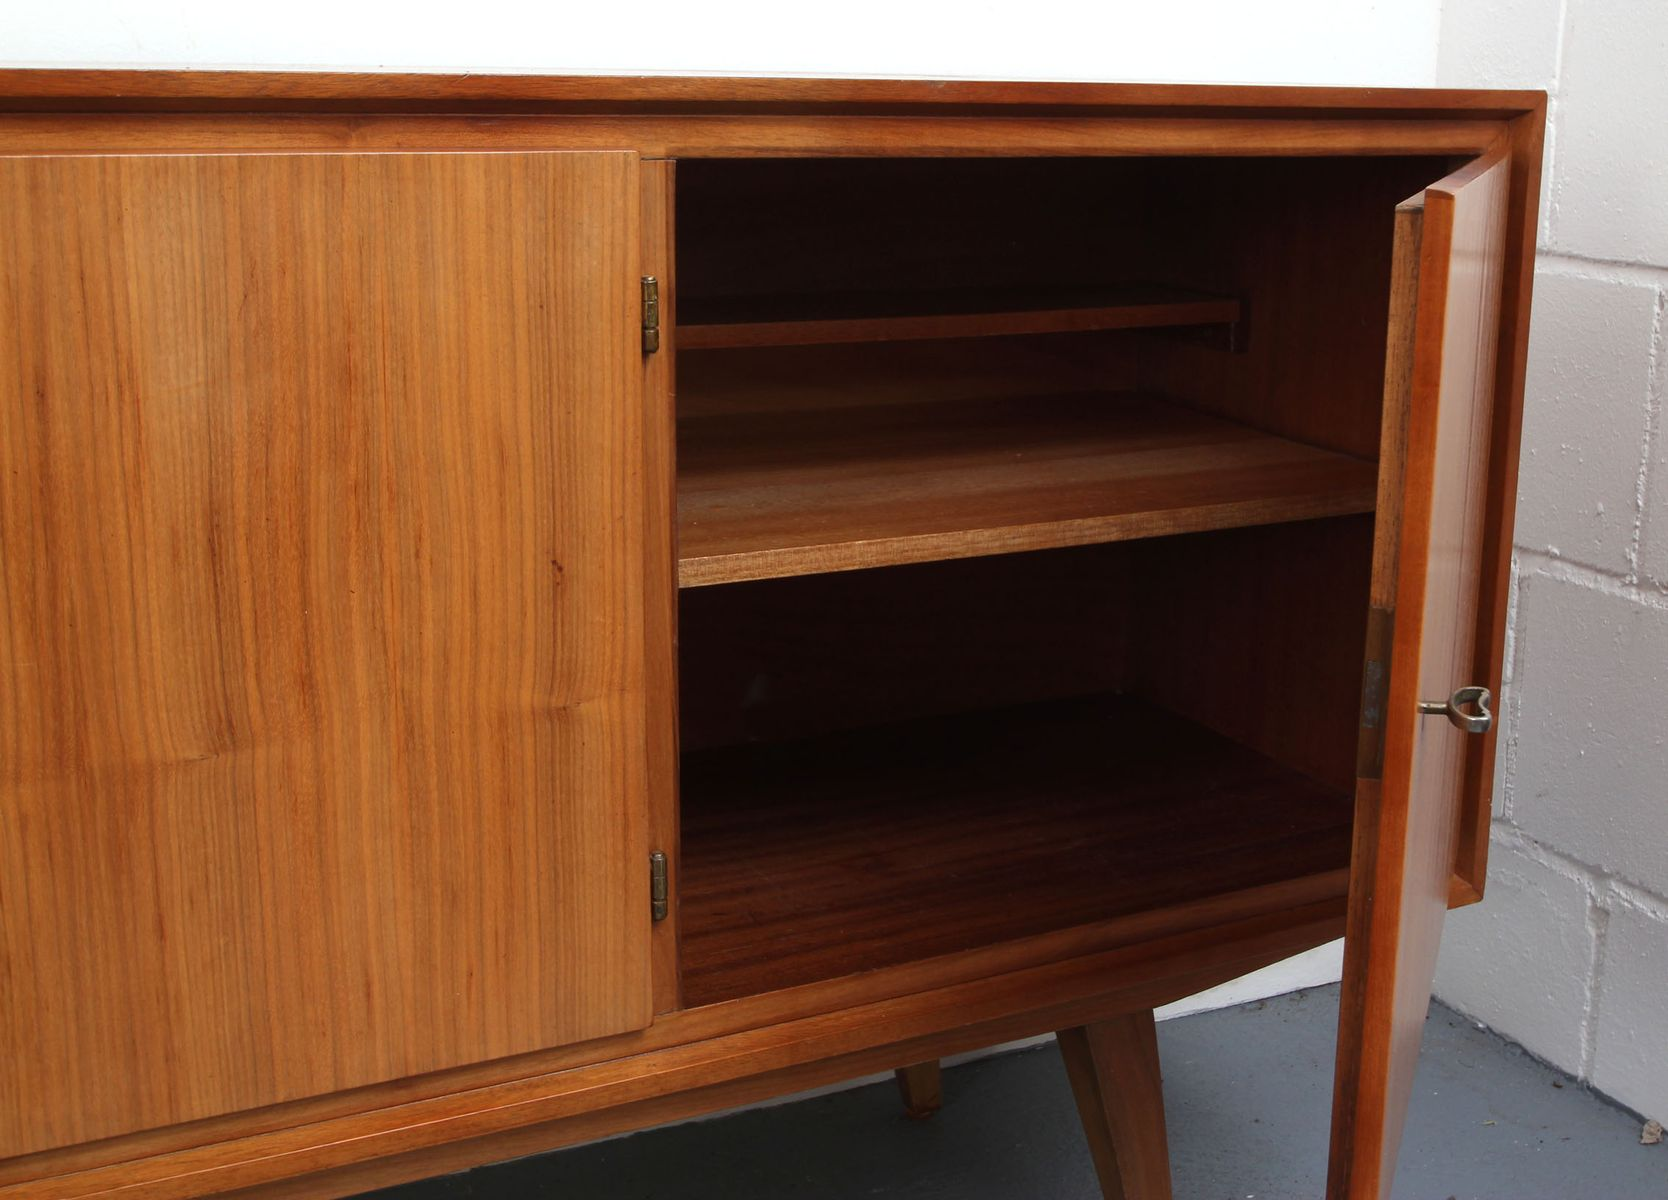 Walnut veneer sideboard 1950s for sale at pamono for Sideboard x7